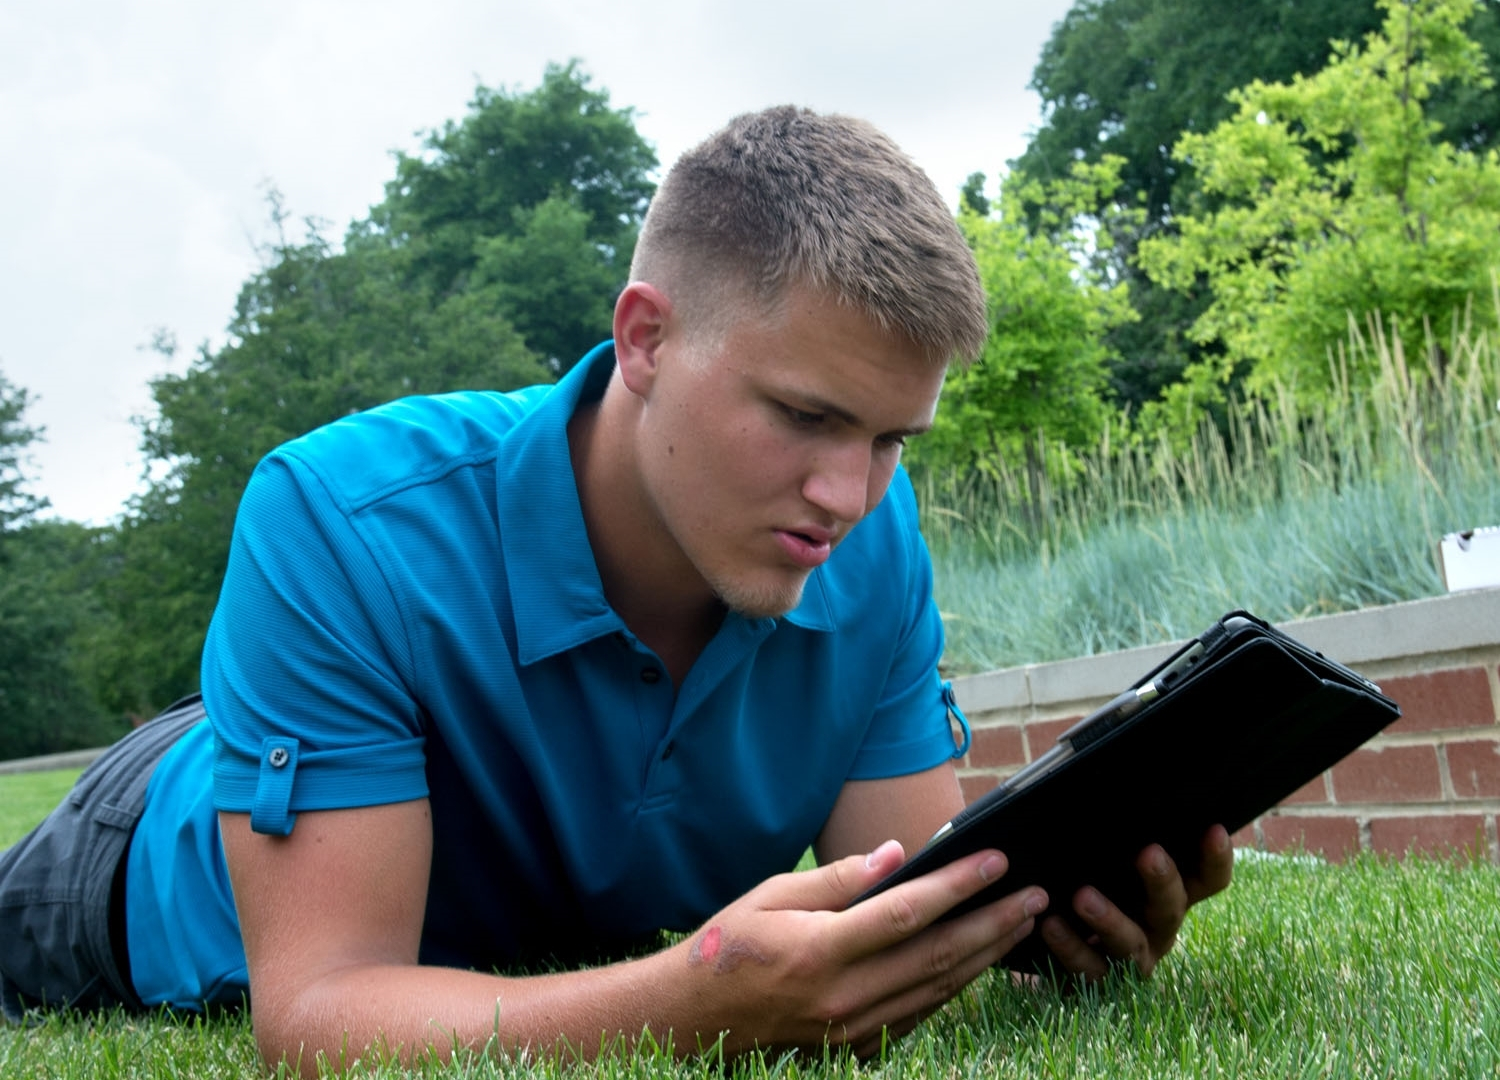 Student on a campus lawn using an iPad